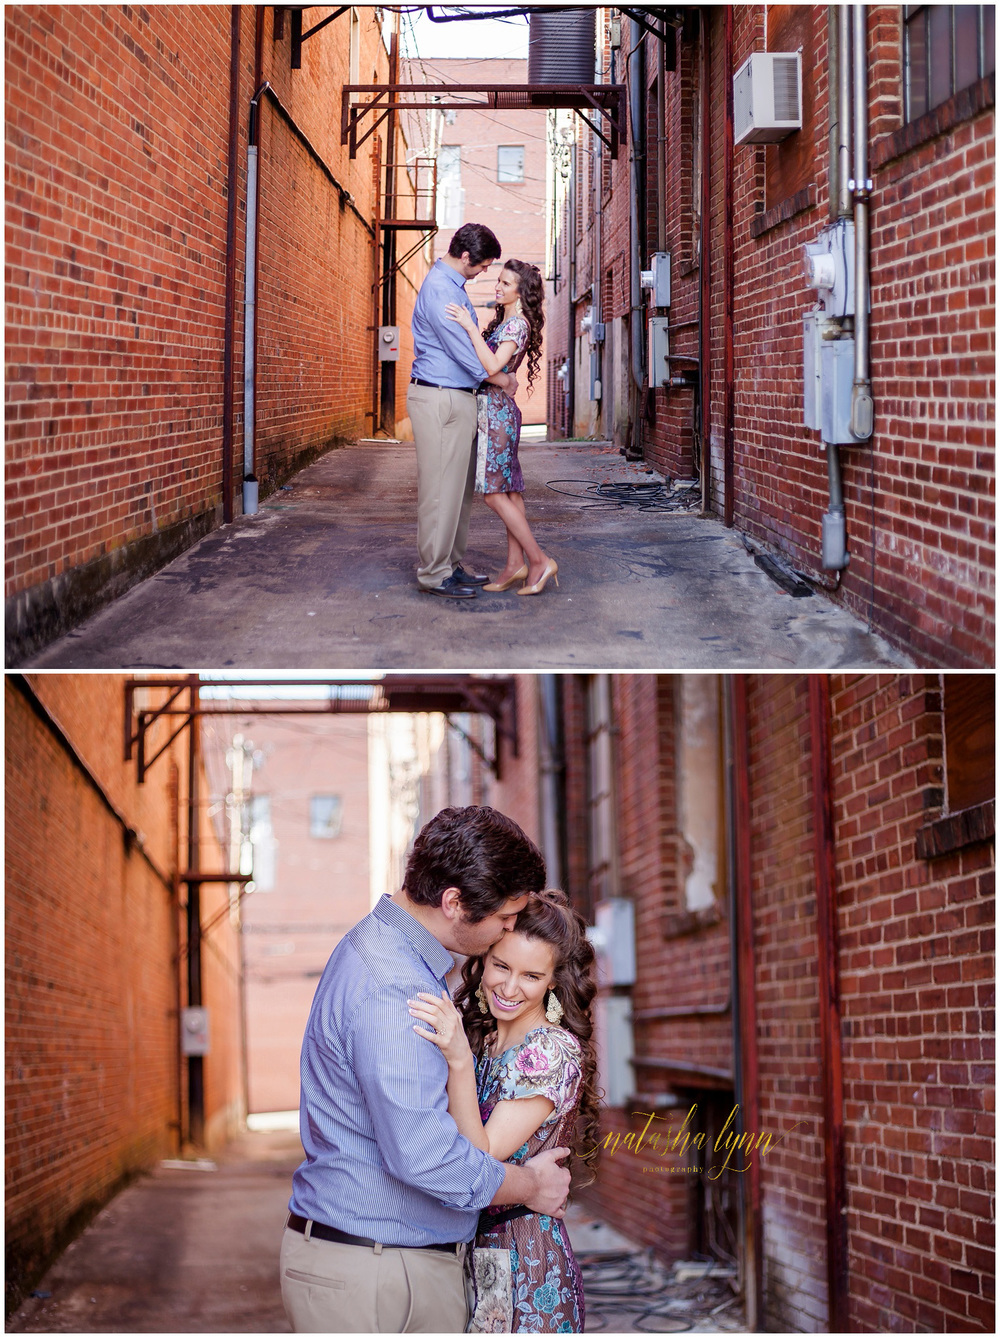 Wilkes+County+Engagement+Photographer_5.jpg